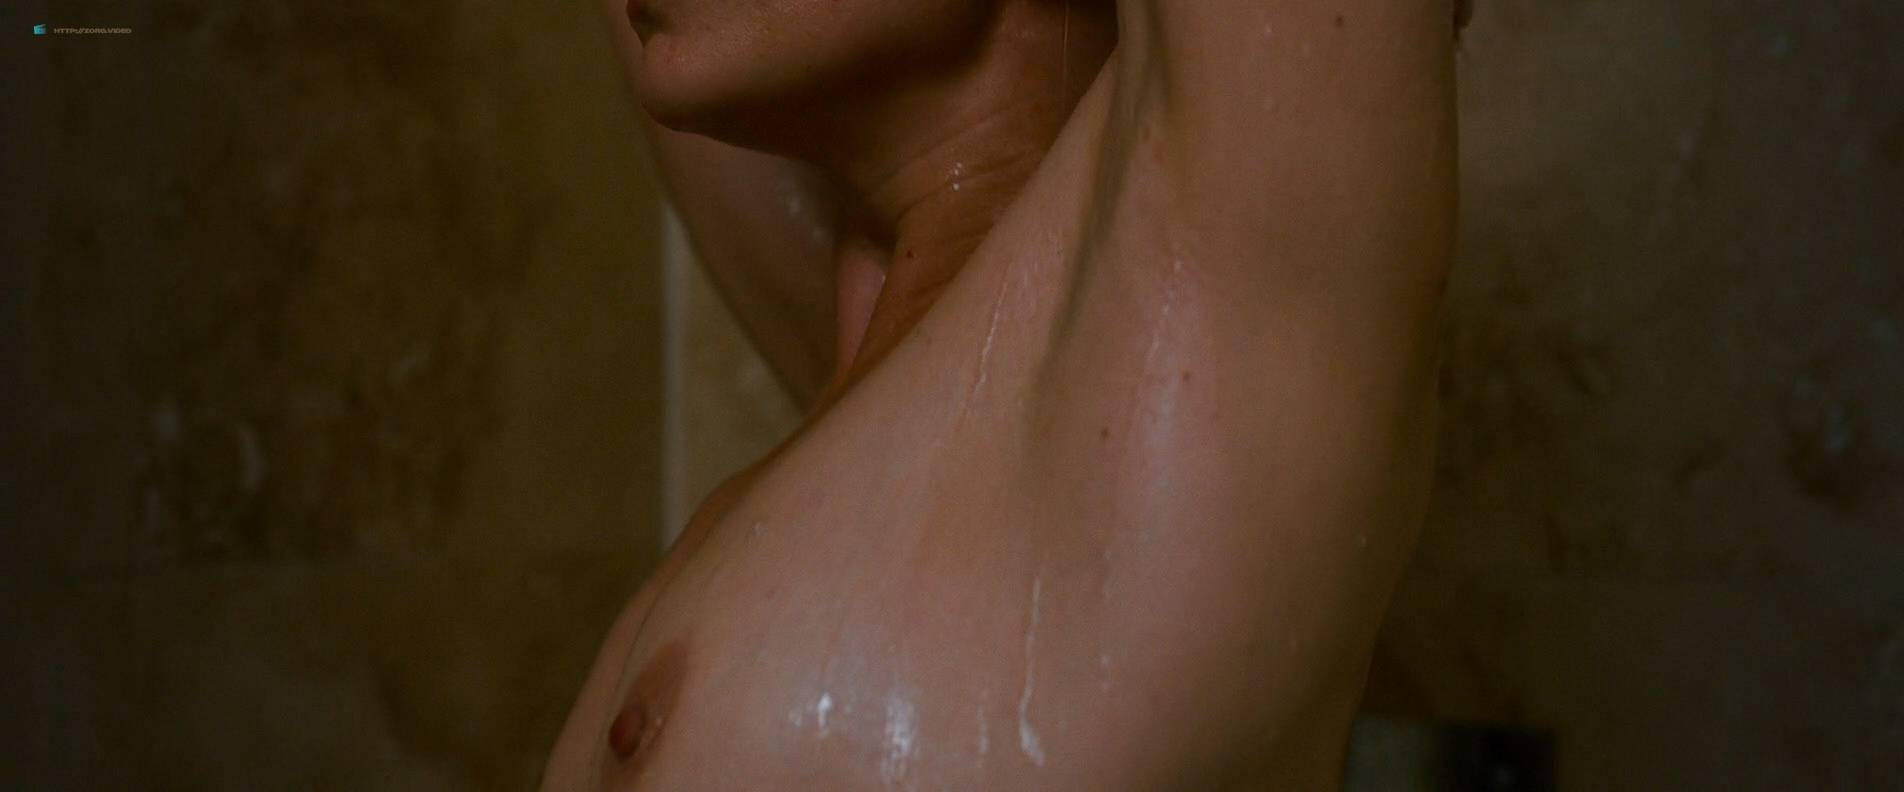 Natalie Dormer nude topless in the shower and sex Emily Ratajkowski hot - In Darkness (2018) HD 1080p (13)